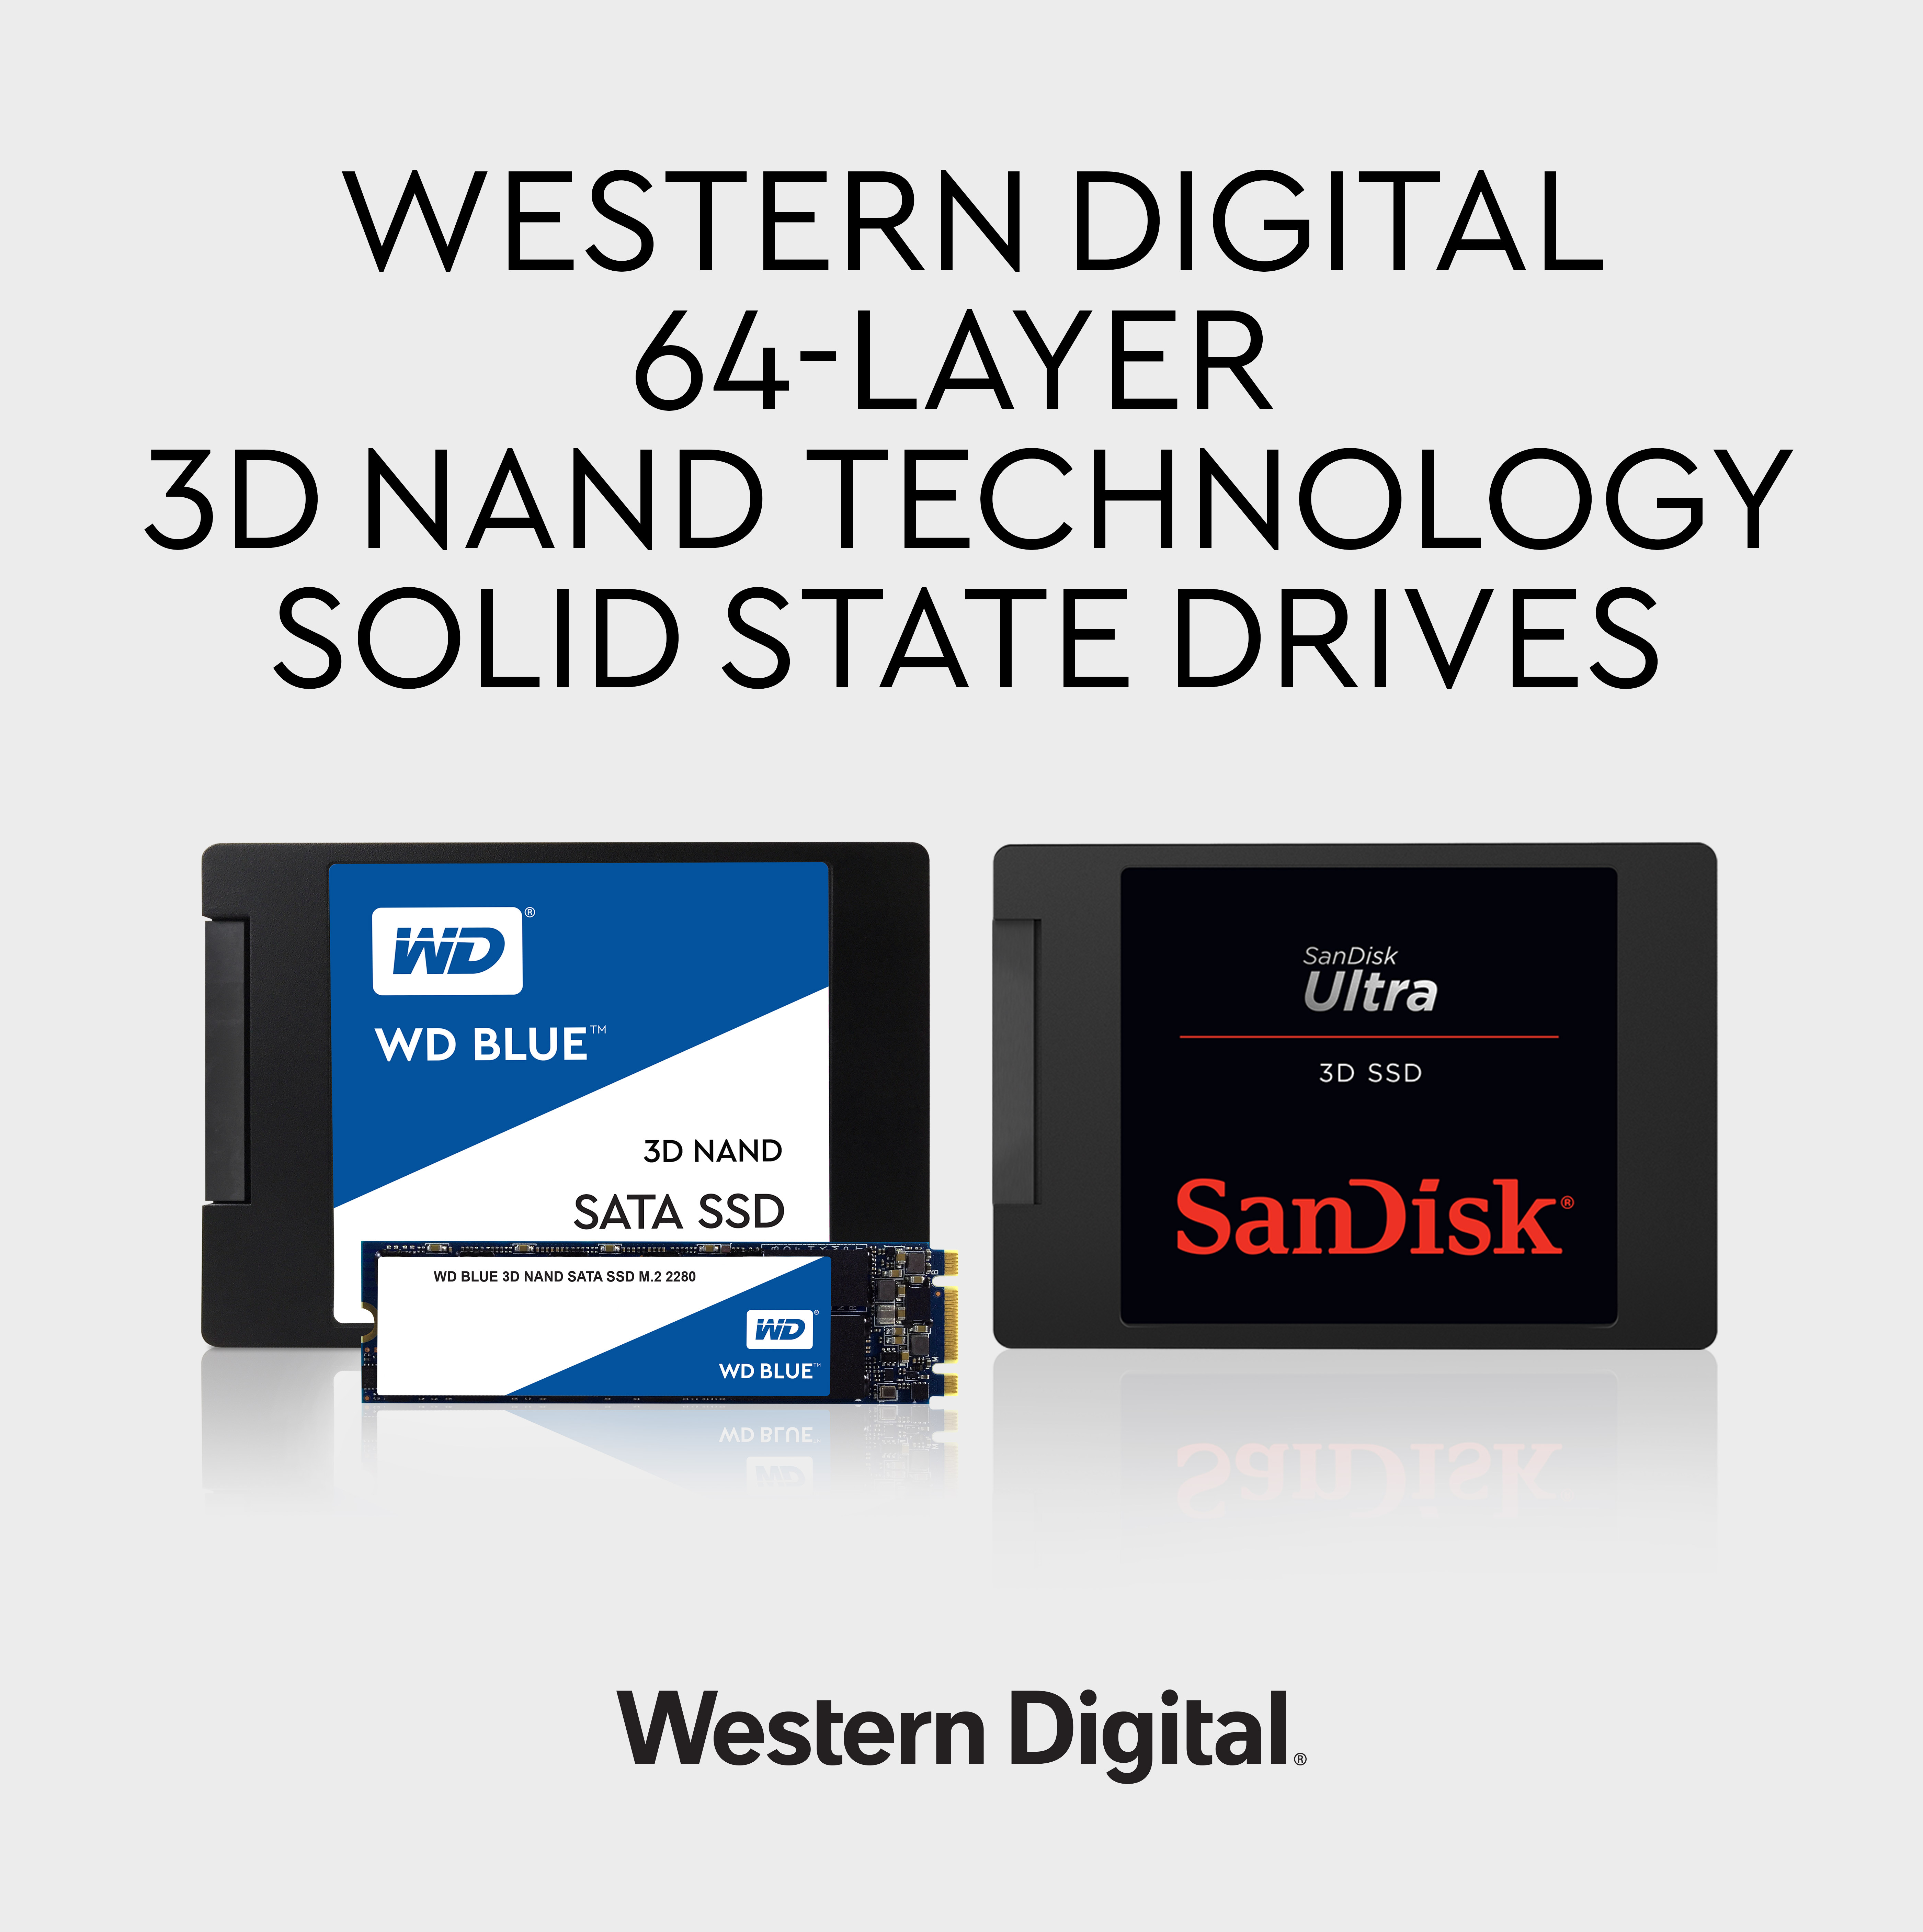 Western Digital unveils new SSDs to lower power consumption